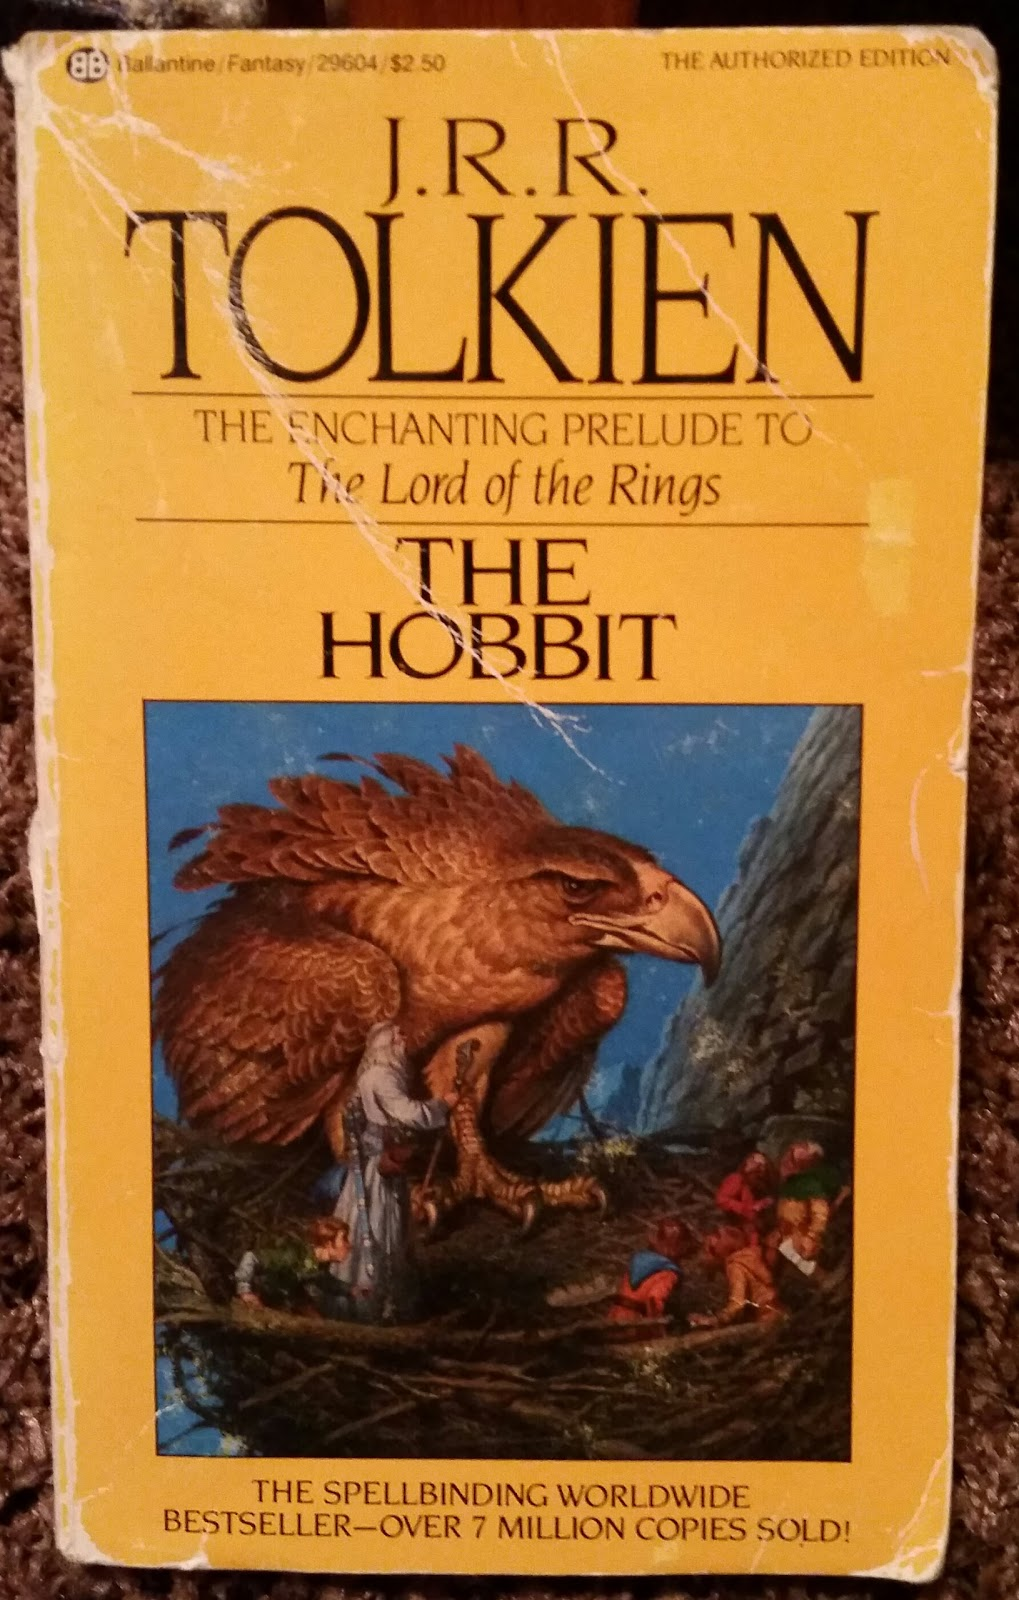 a review of the book the hobbit by jrr tolkien The hobbit = there and back again, jrr tolkien the hobbit, or there and back again is a children's fantasy novel by english author j r r tolkien it was published on 21 september 1937 to wide critical acclaim, being nominated for the carnegie medal and awarded a prize from the new york herald tribune for best juvenile fiction.